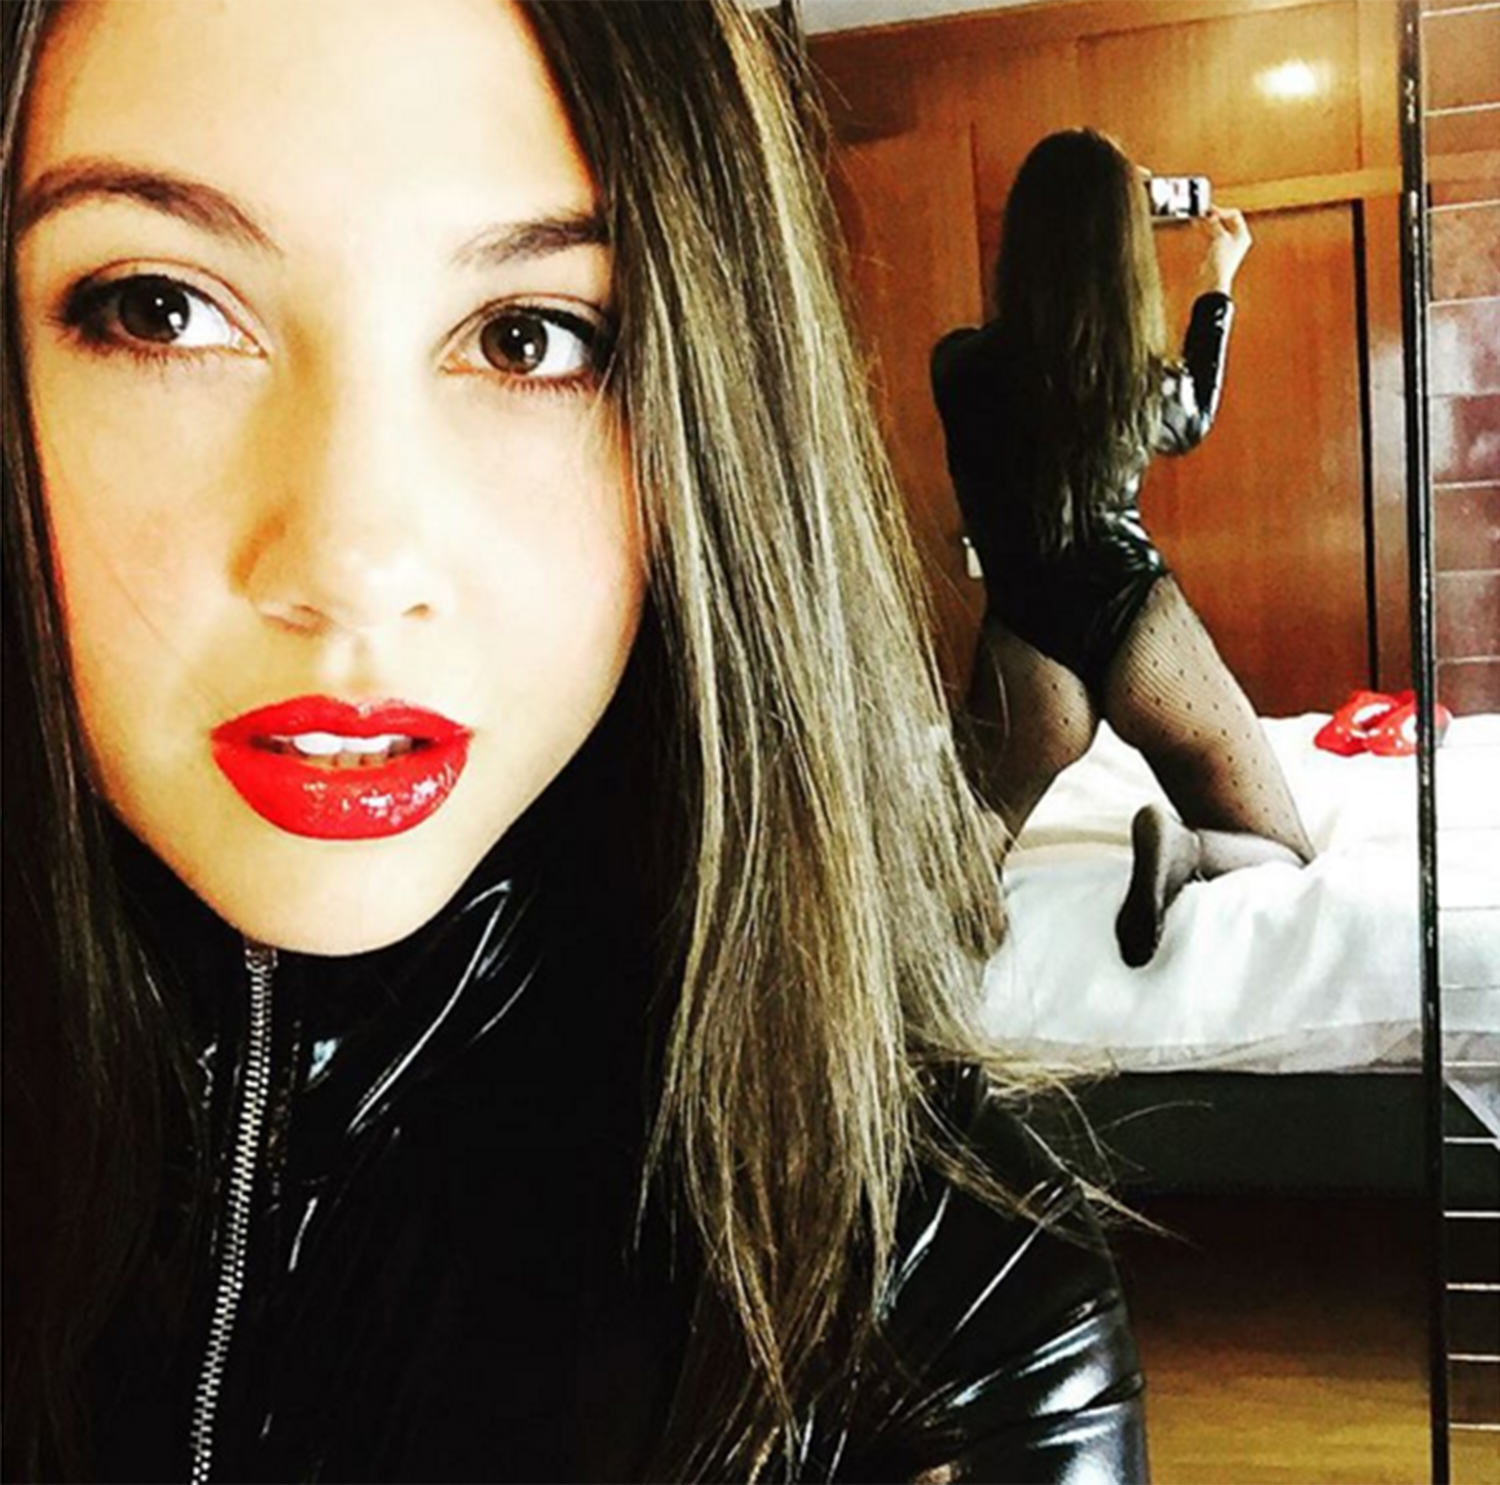 ceara1 A Dominatrix Has Confessed The Strangest Requests Shes Received From Clients